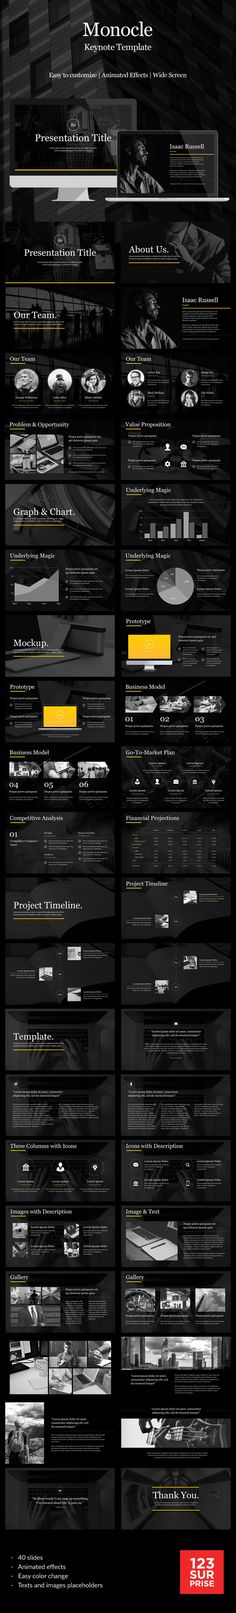 Monocle Powerpoint Presentation Template #slides Download: http://graphicriver.net/item/monocle-powerpoint-presentation-template/14463072?ref=ksioks